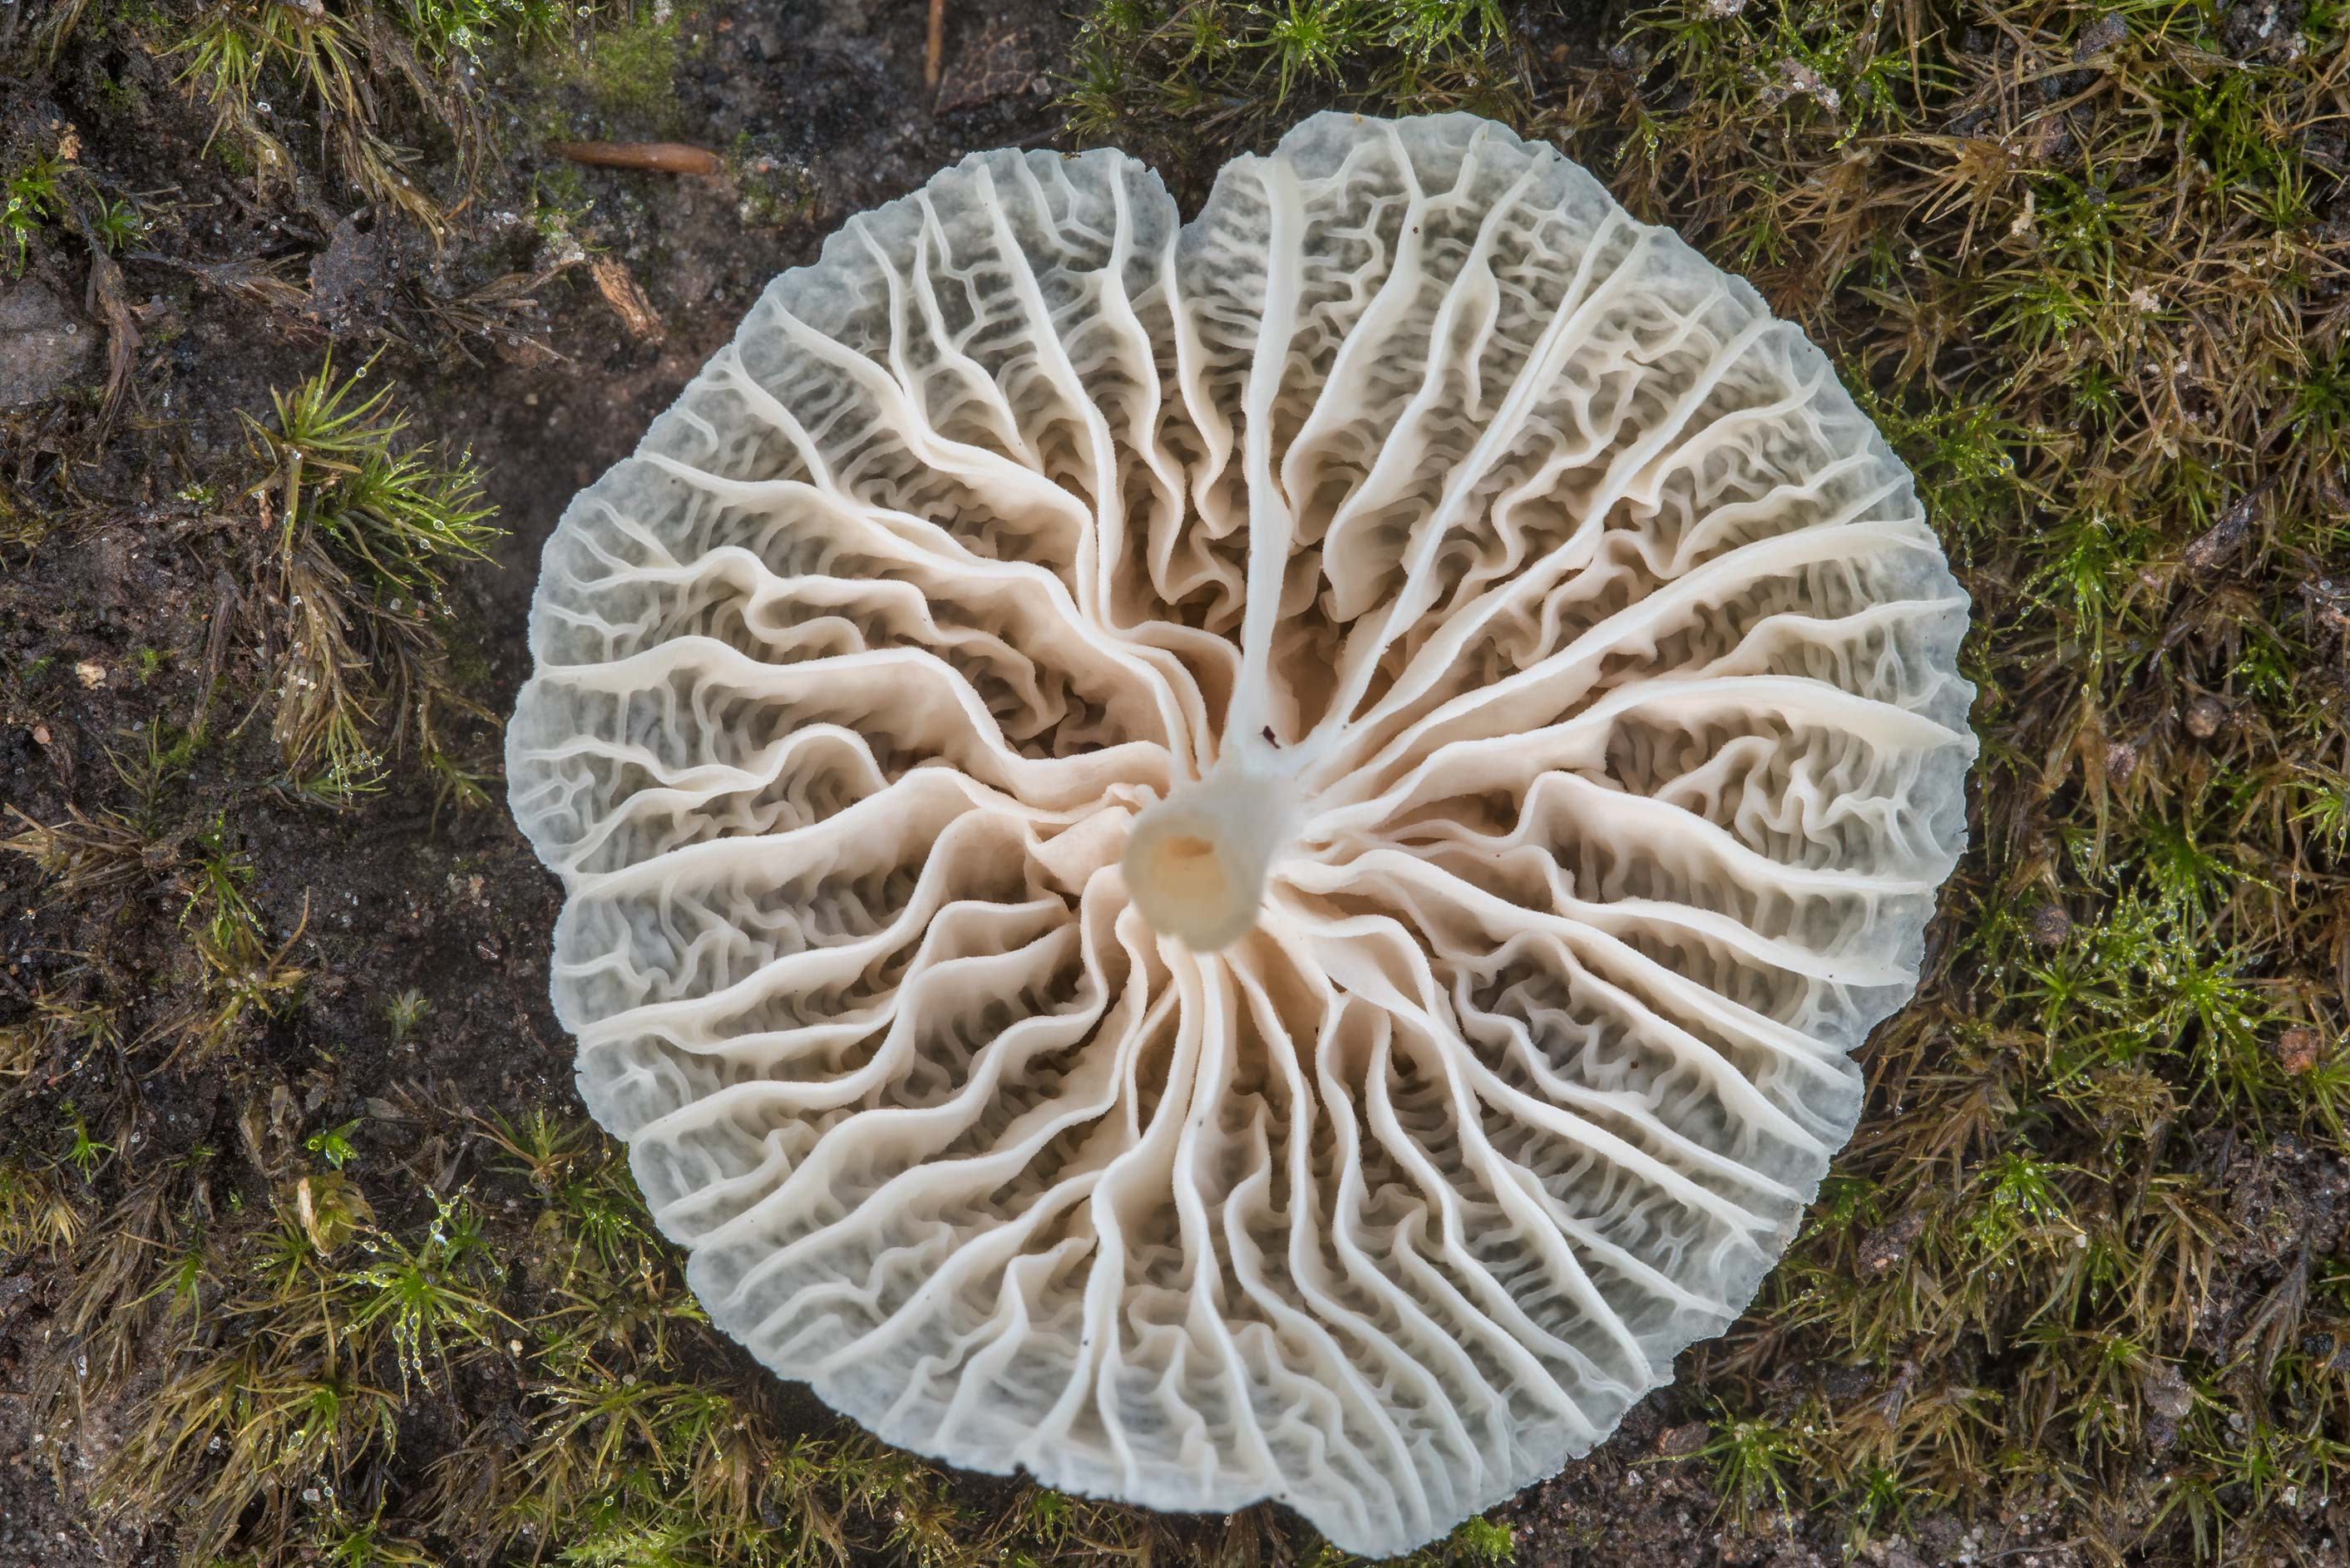 Gills of Marasmiellus mushroom in Lick Creek Park. College Station, Texas